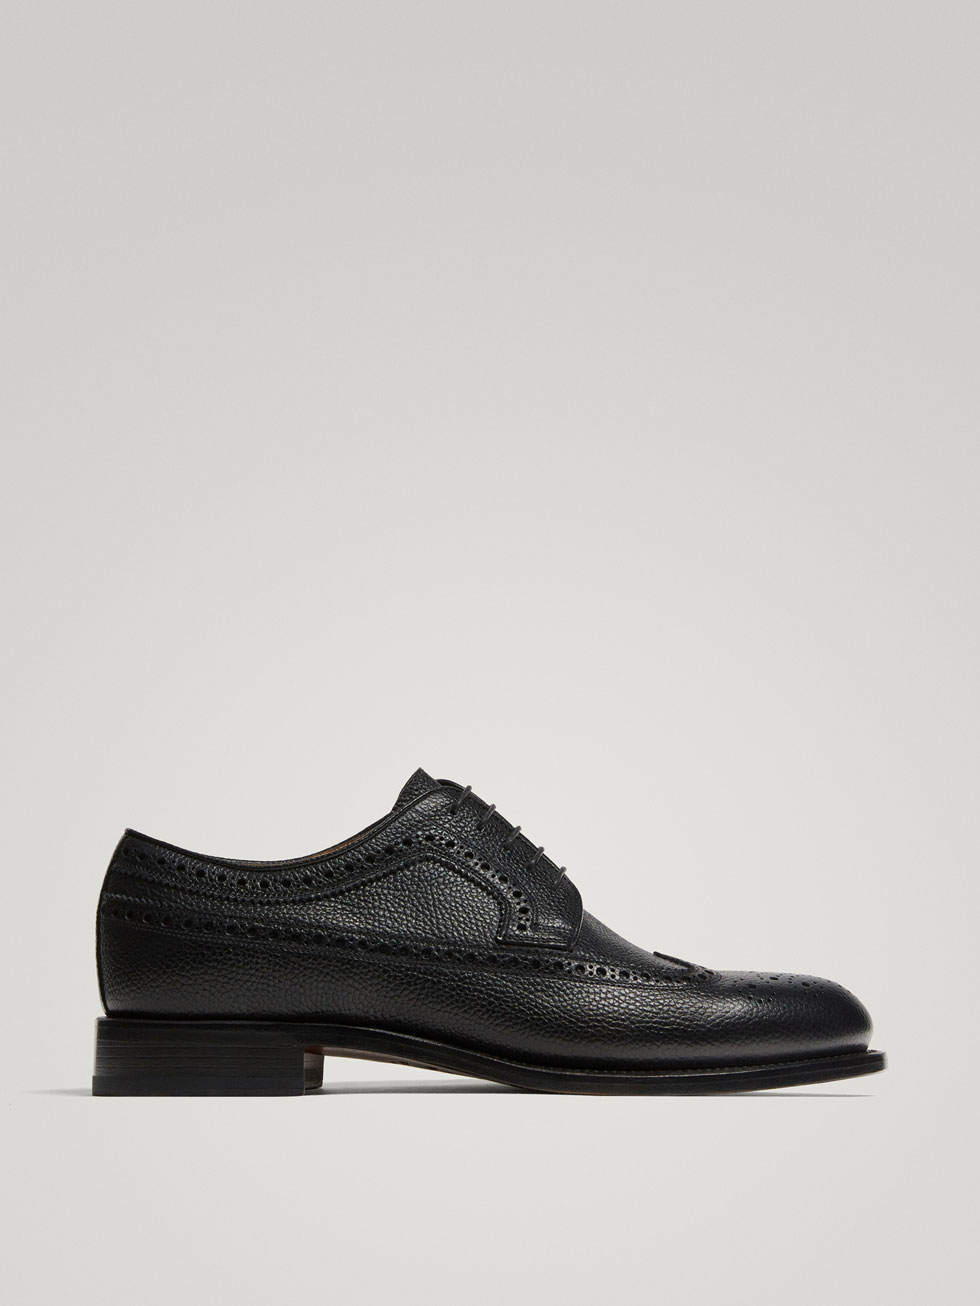 Black Leather Brogues Made In Italy by Massimo Dutti